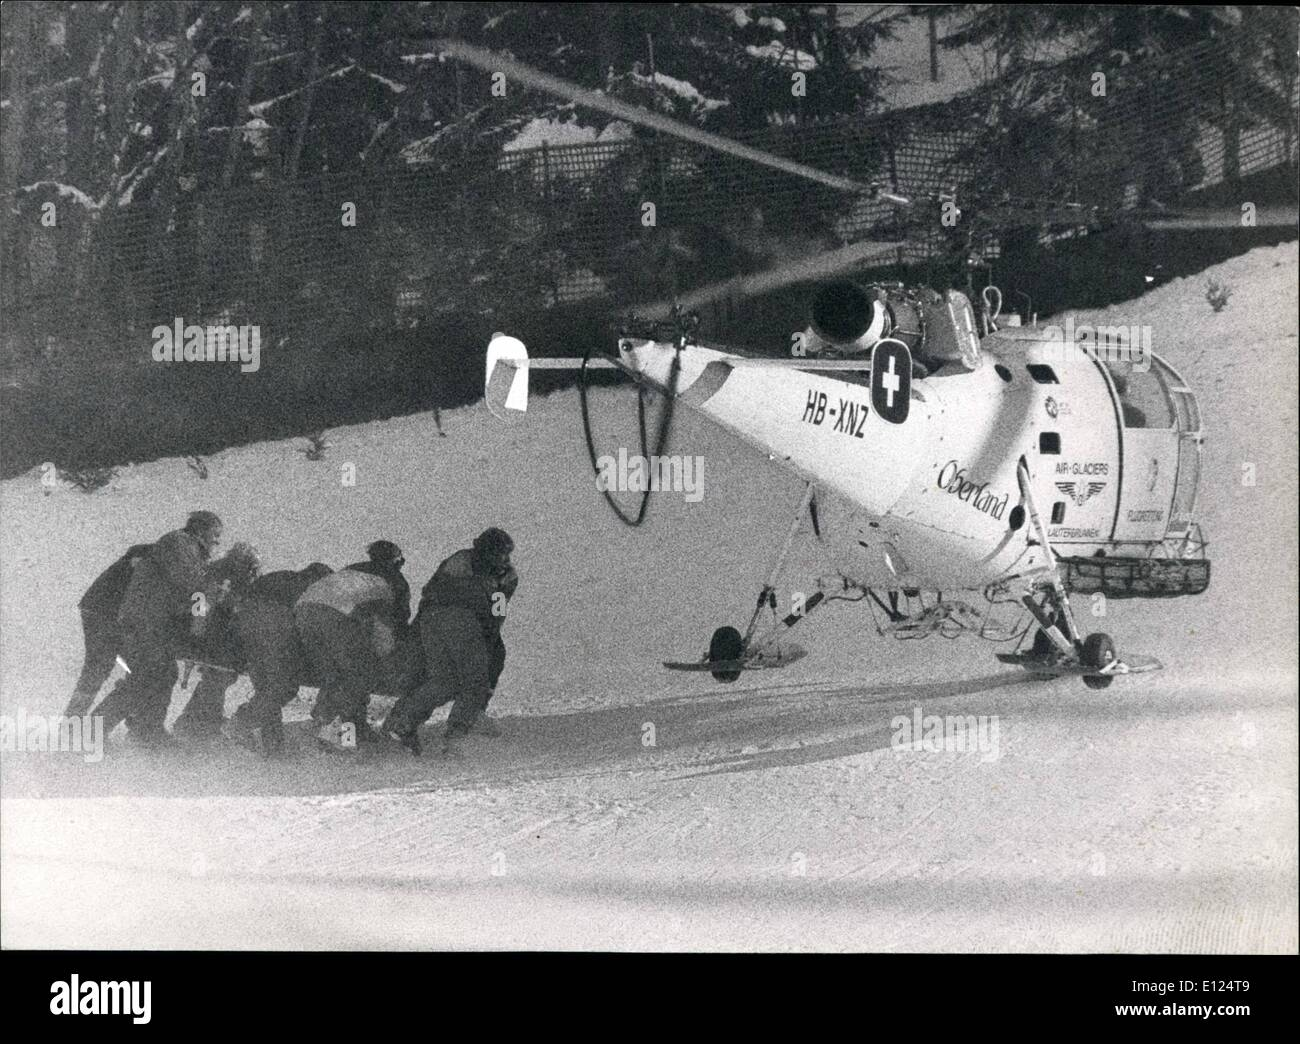 Jan. 01, 1991 - The Austrian skier Gernot Reinstadler died: During the qualification - run at the Swiss Lauberhorn, the Austrian downhill - skier Gernot Reinstadler suffered a very grave crash January 18th. He was brought to the hospital of Interlaken, where he died a few hours later. Photo Shows rescue-workers and doctors bringing Reinstadler to the helicopter. - Stock Image